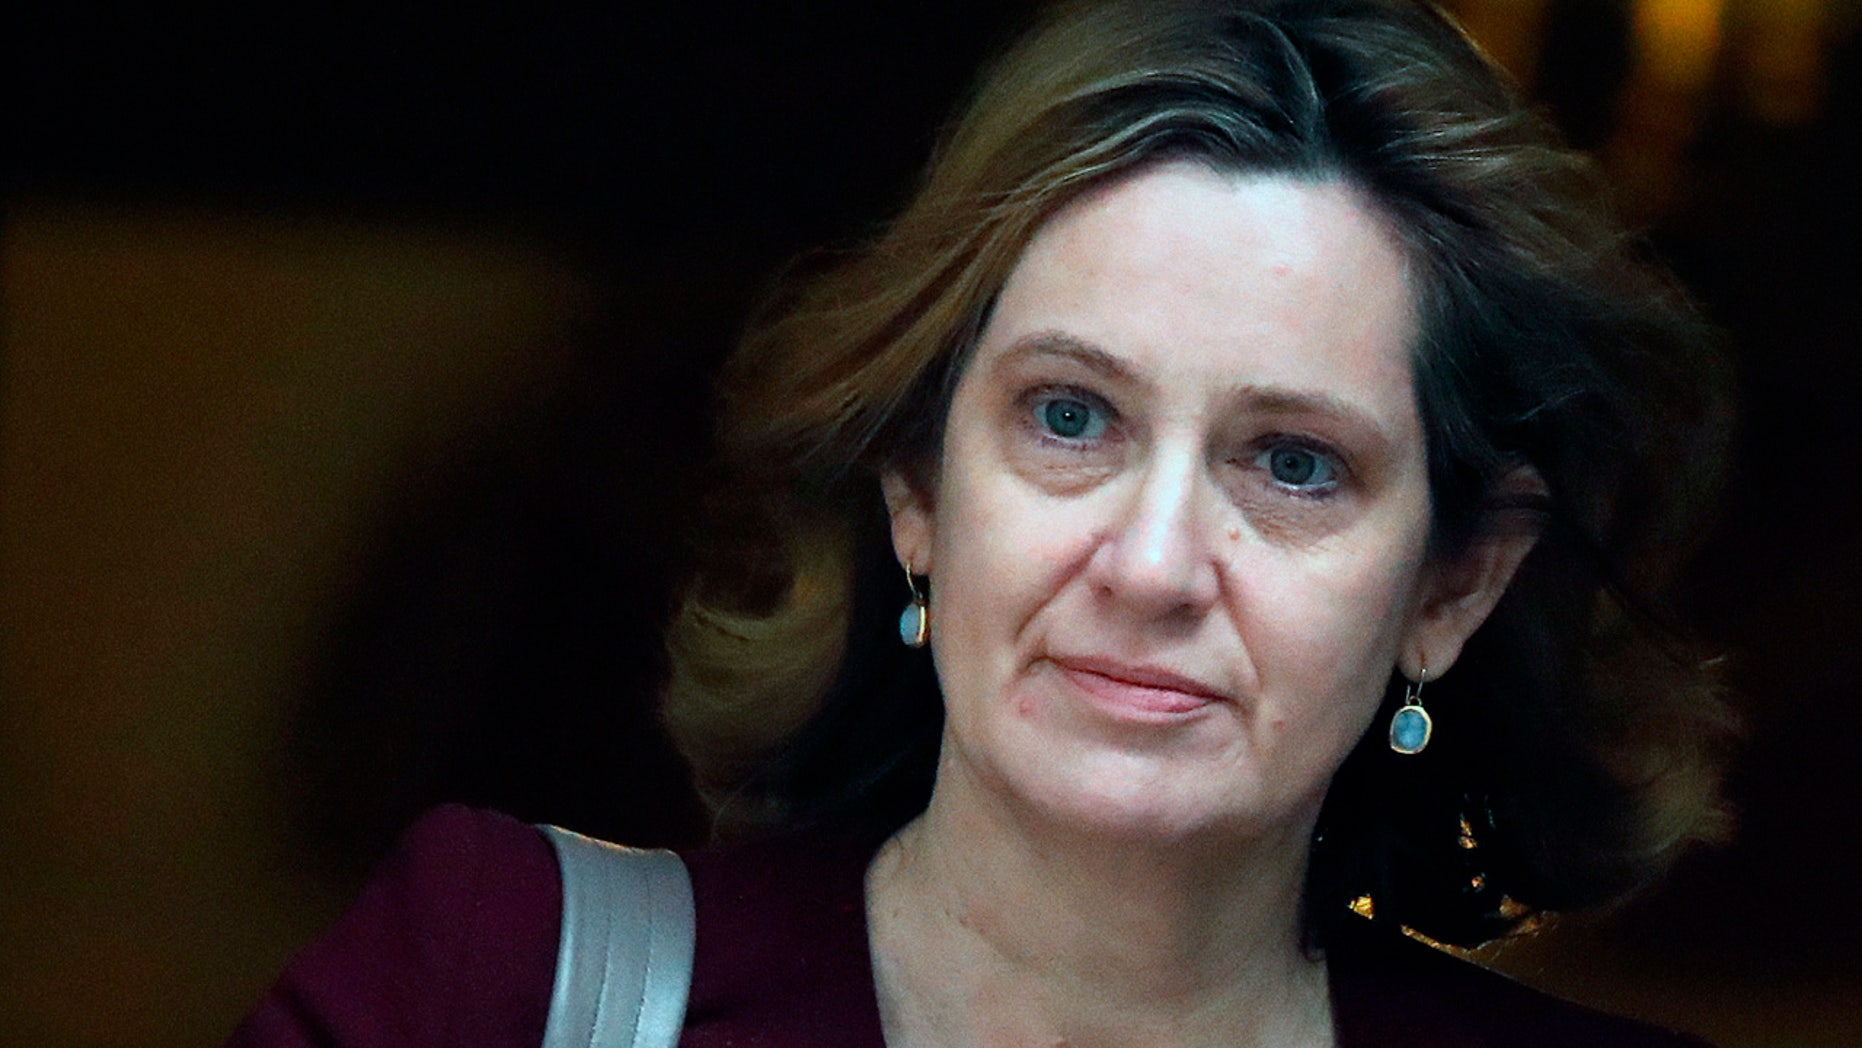 Home Secretary Amber Rudd, pictured in March, submitted her resignation to Prime Minister Theresa May Sunday evening.